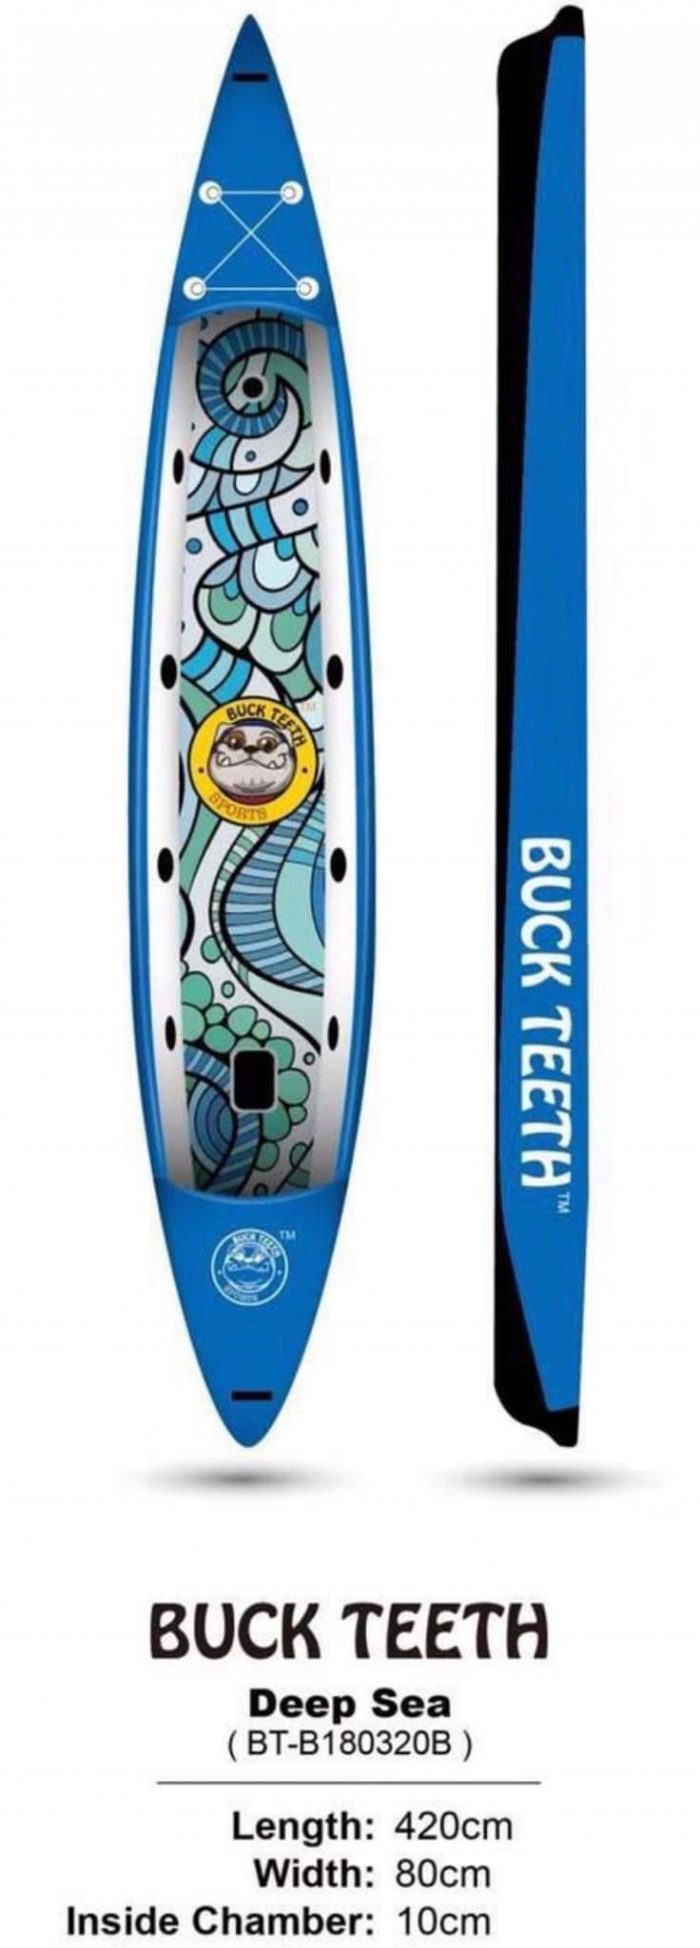 Deep Sea Stand up Paddle Board